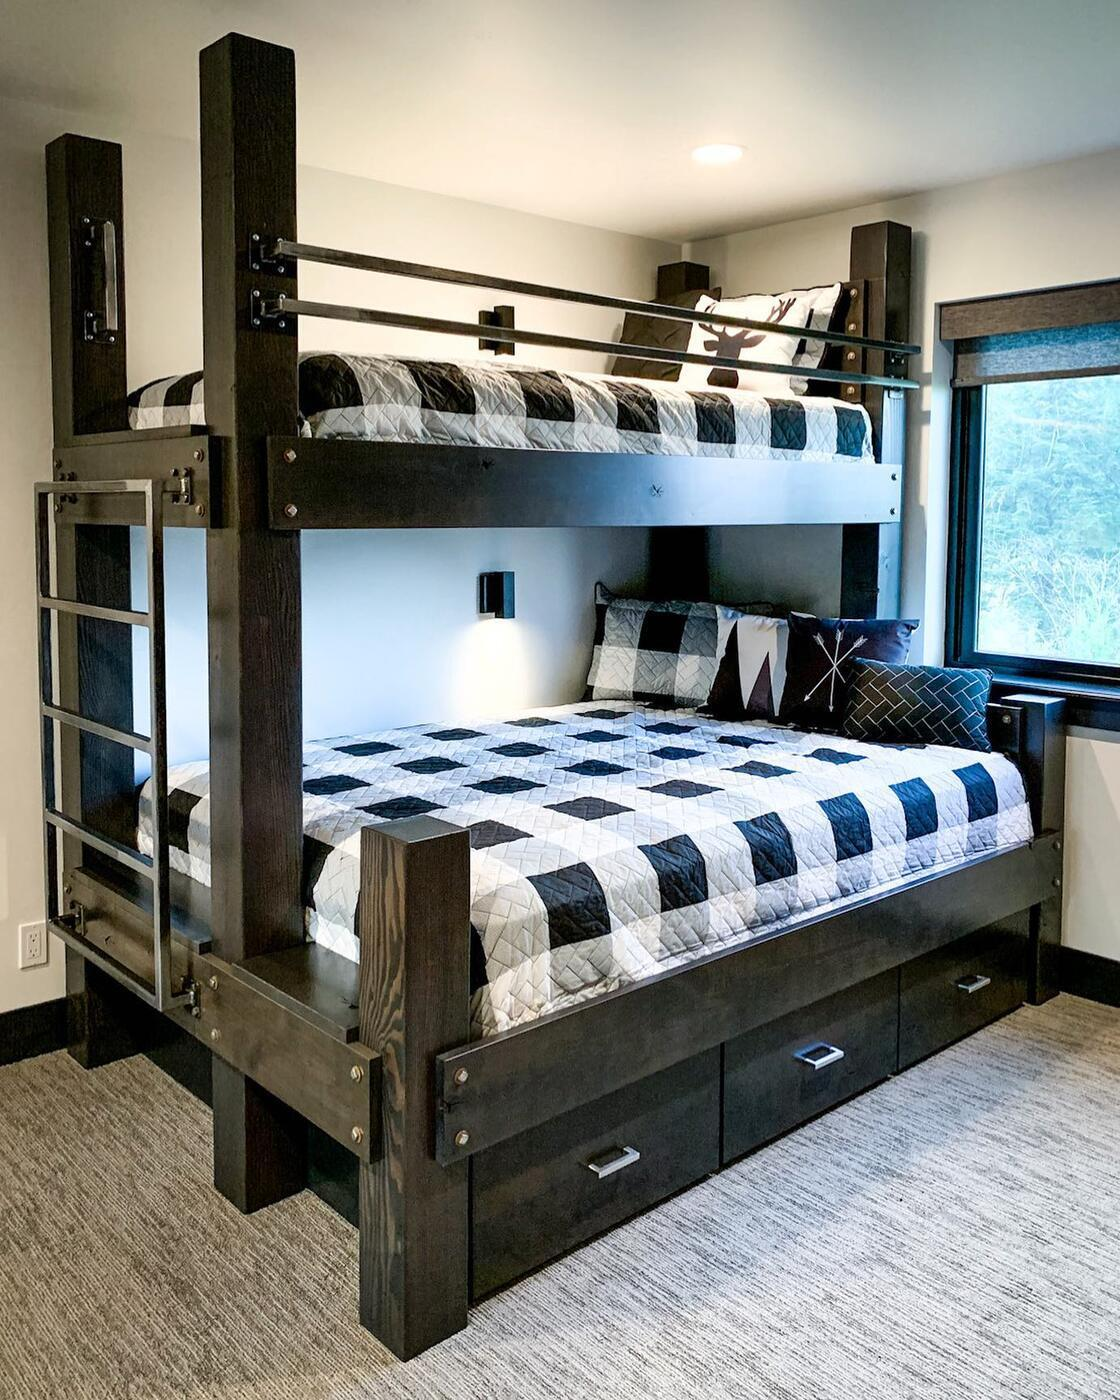 Big Sky Bunks Now Offers Shipping Across The US